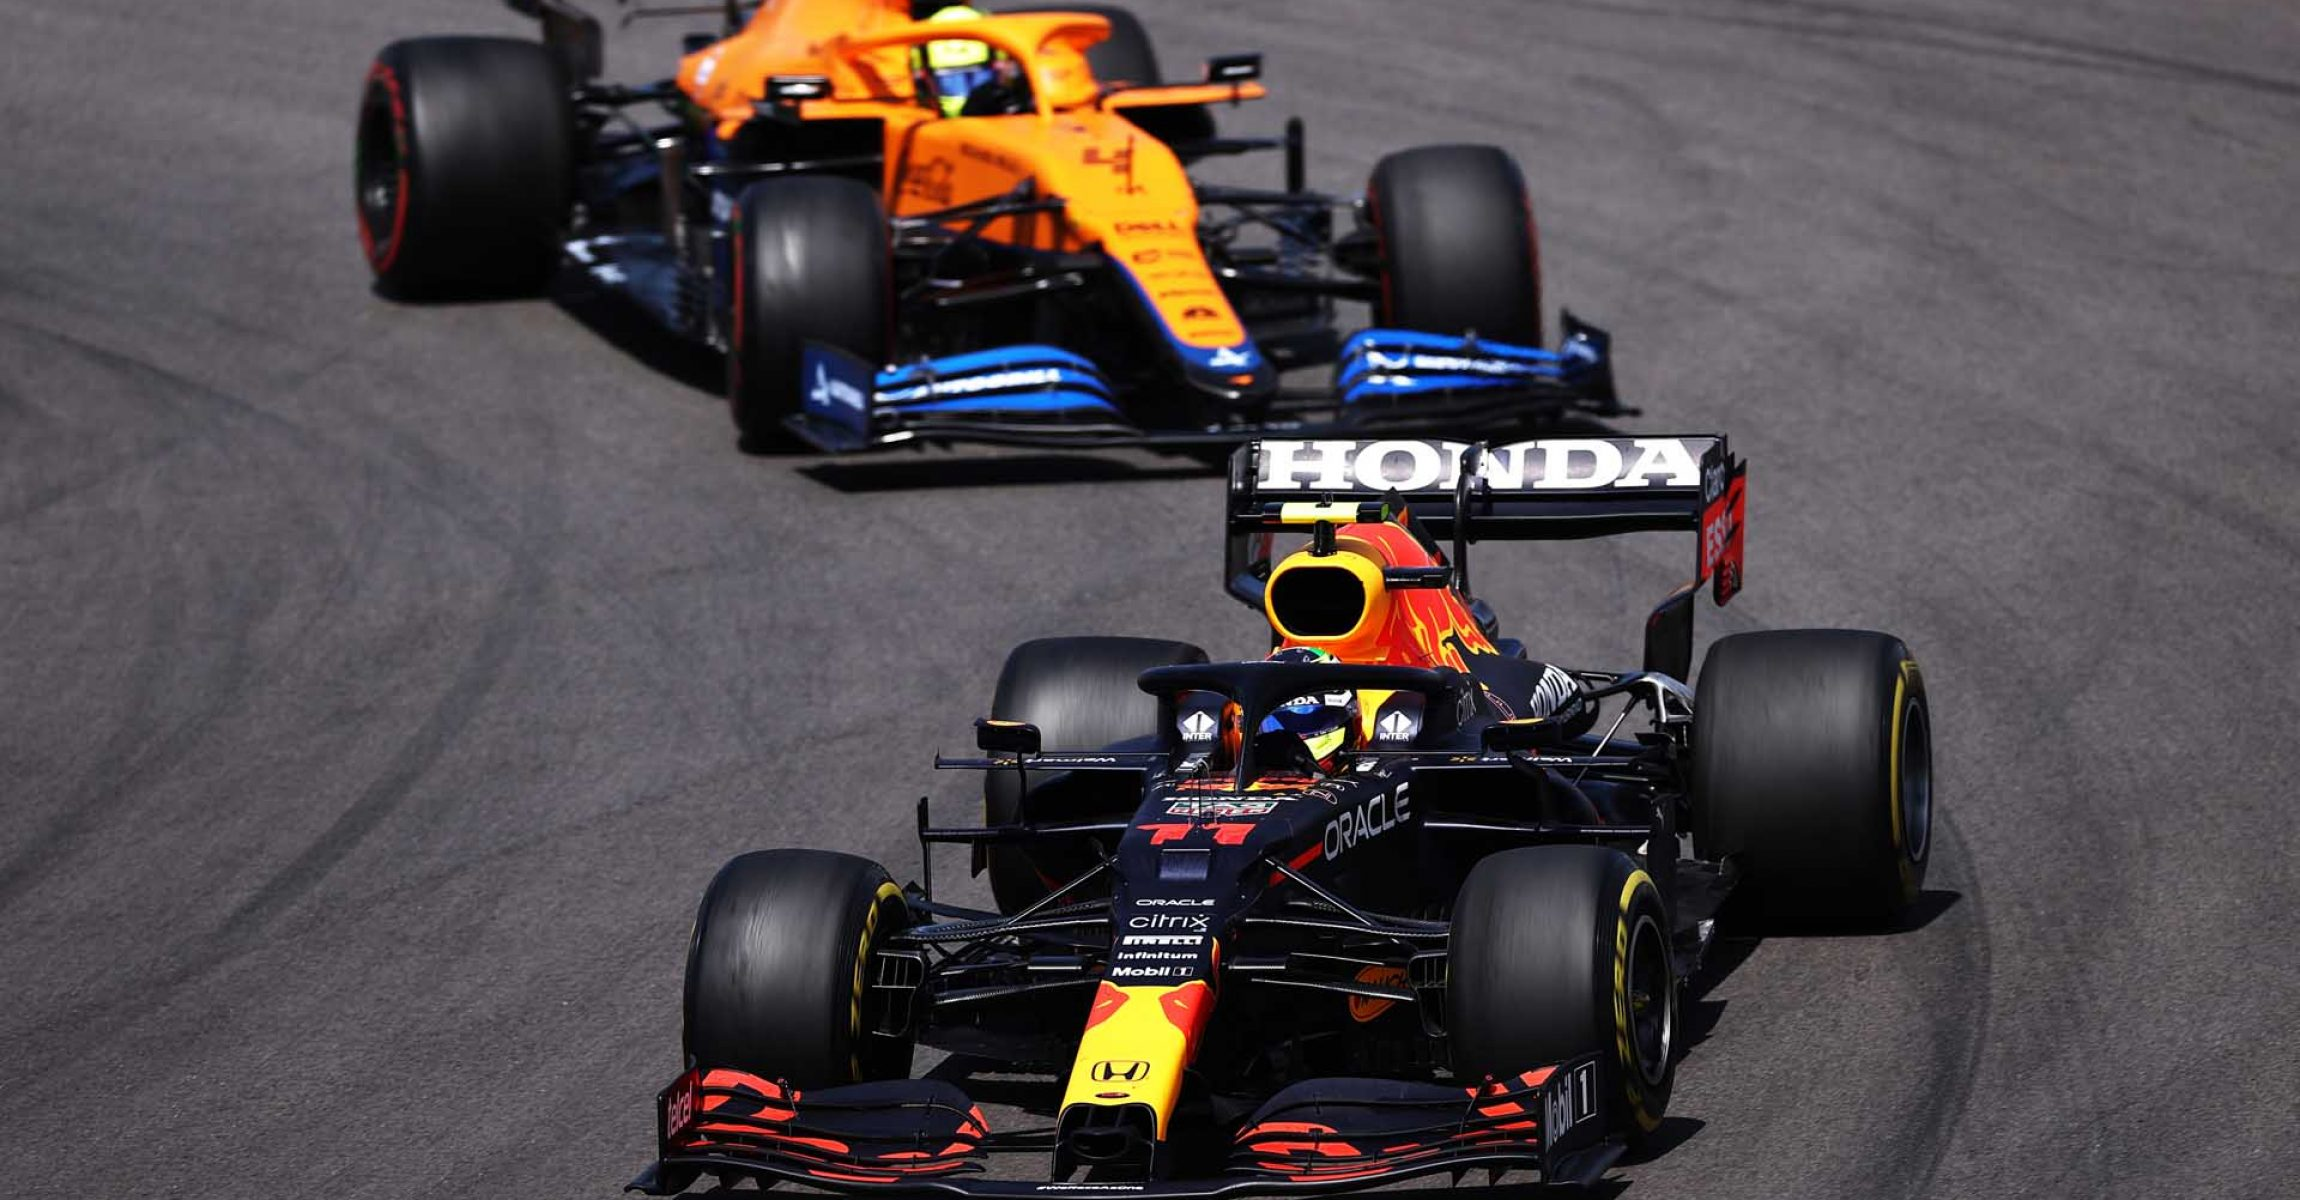 PORTIMAO, PORTUGAL - MAY 02: Sergio Perez of Mexico driving the (11) Red Bull Racing RB16B Honda leads Lando Norris of Great Britain driving the (4) McLaren F1 Team MCL35M Mercedes on track during the F1 Grand Prix of Portugal at Autodromo Internacional Do Algarve on May 02, 2021 in Portimao, Portugal. (Photo by Lars Baron/Getty Images)